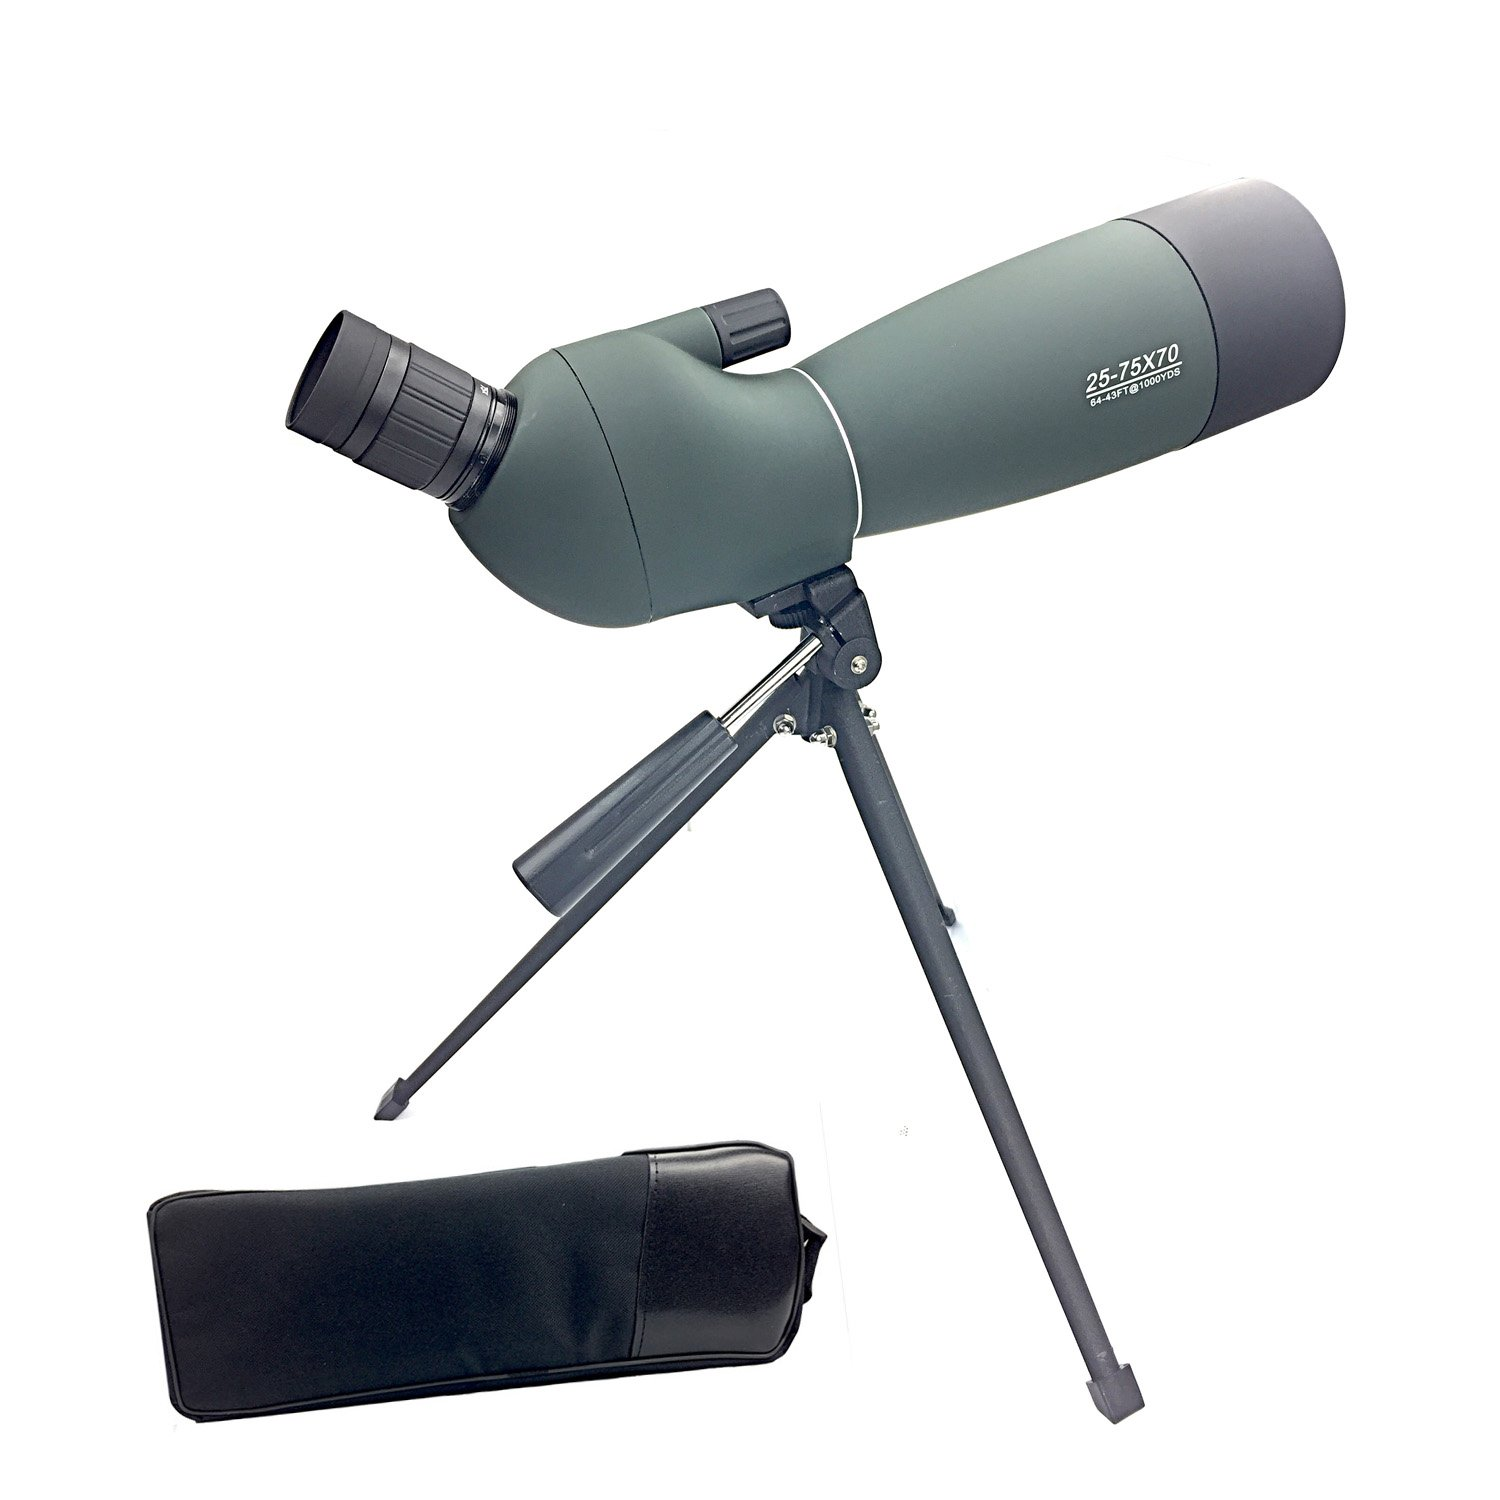 Twod 25-75X 70 Spotting Scope Waterproof, 45 Degree Angled Eyepiece with Tripod for Bird Watching Telescope, Target Shooting, Outdoor Activities